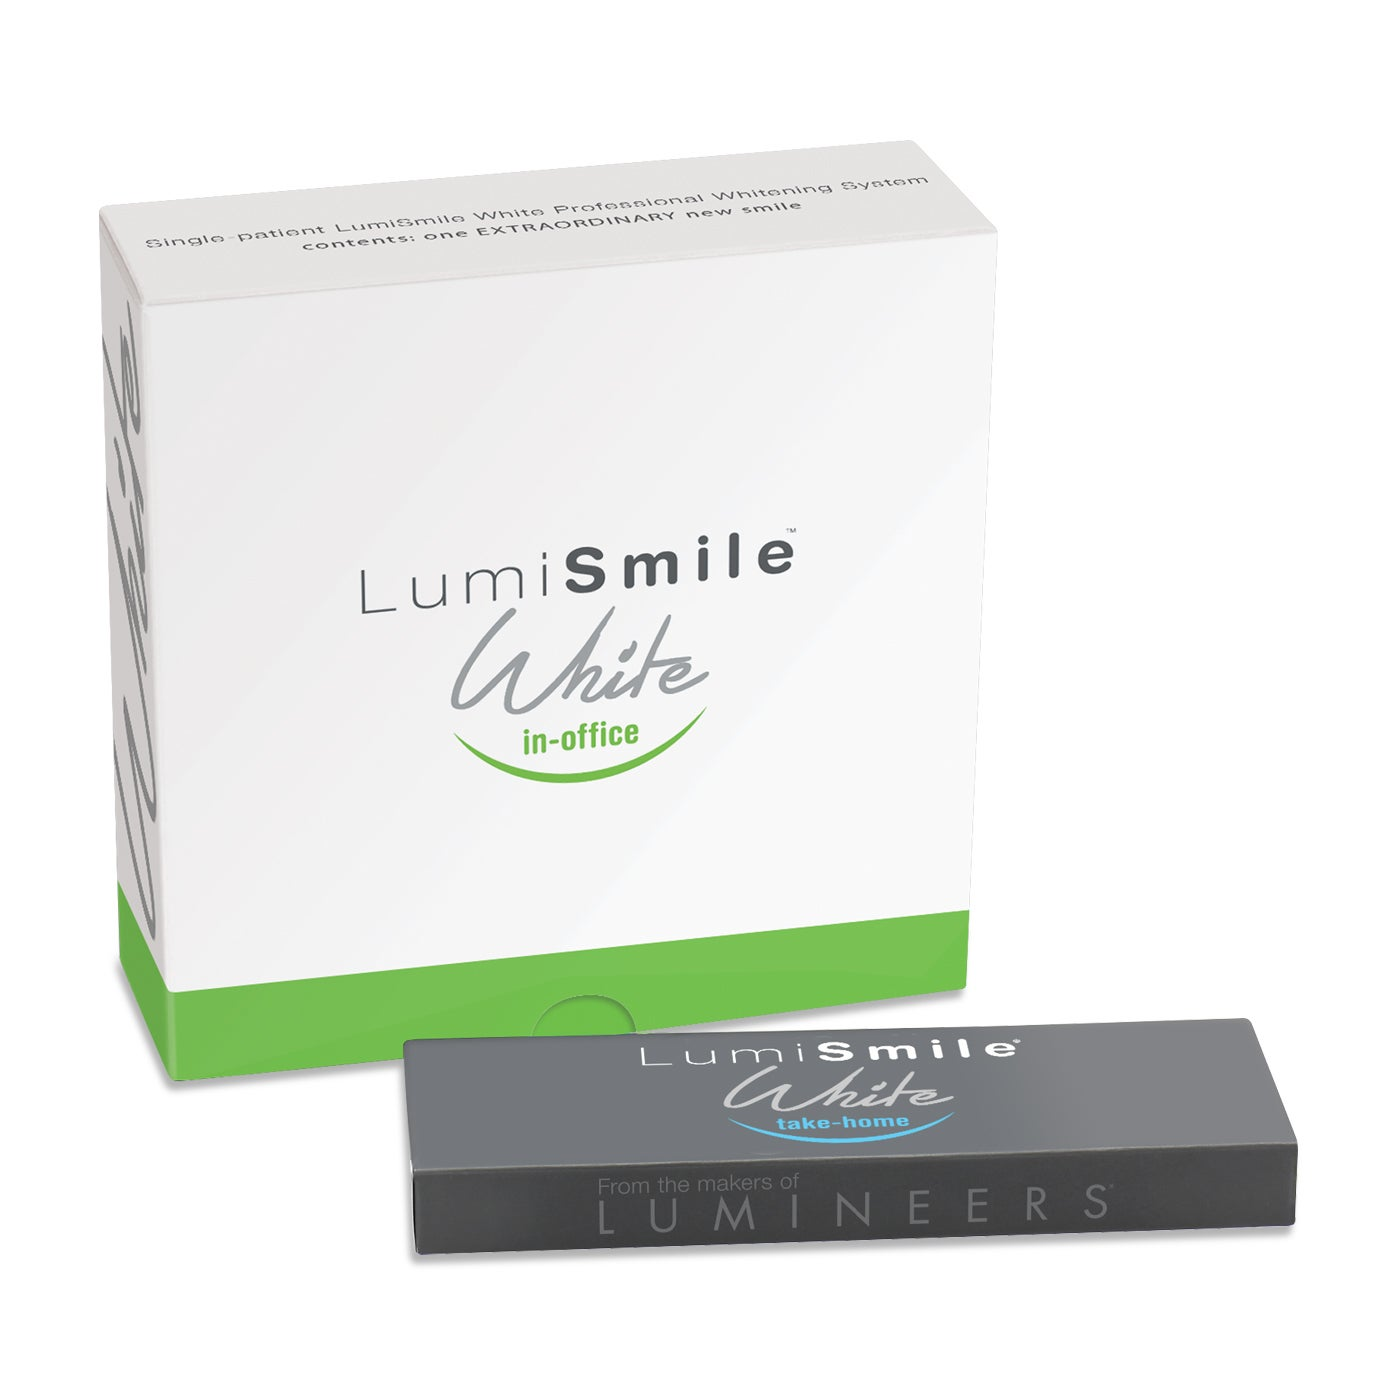 Dental Whitening Kit - LumiSmile® White 22% Combo Kit